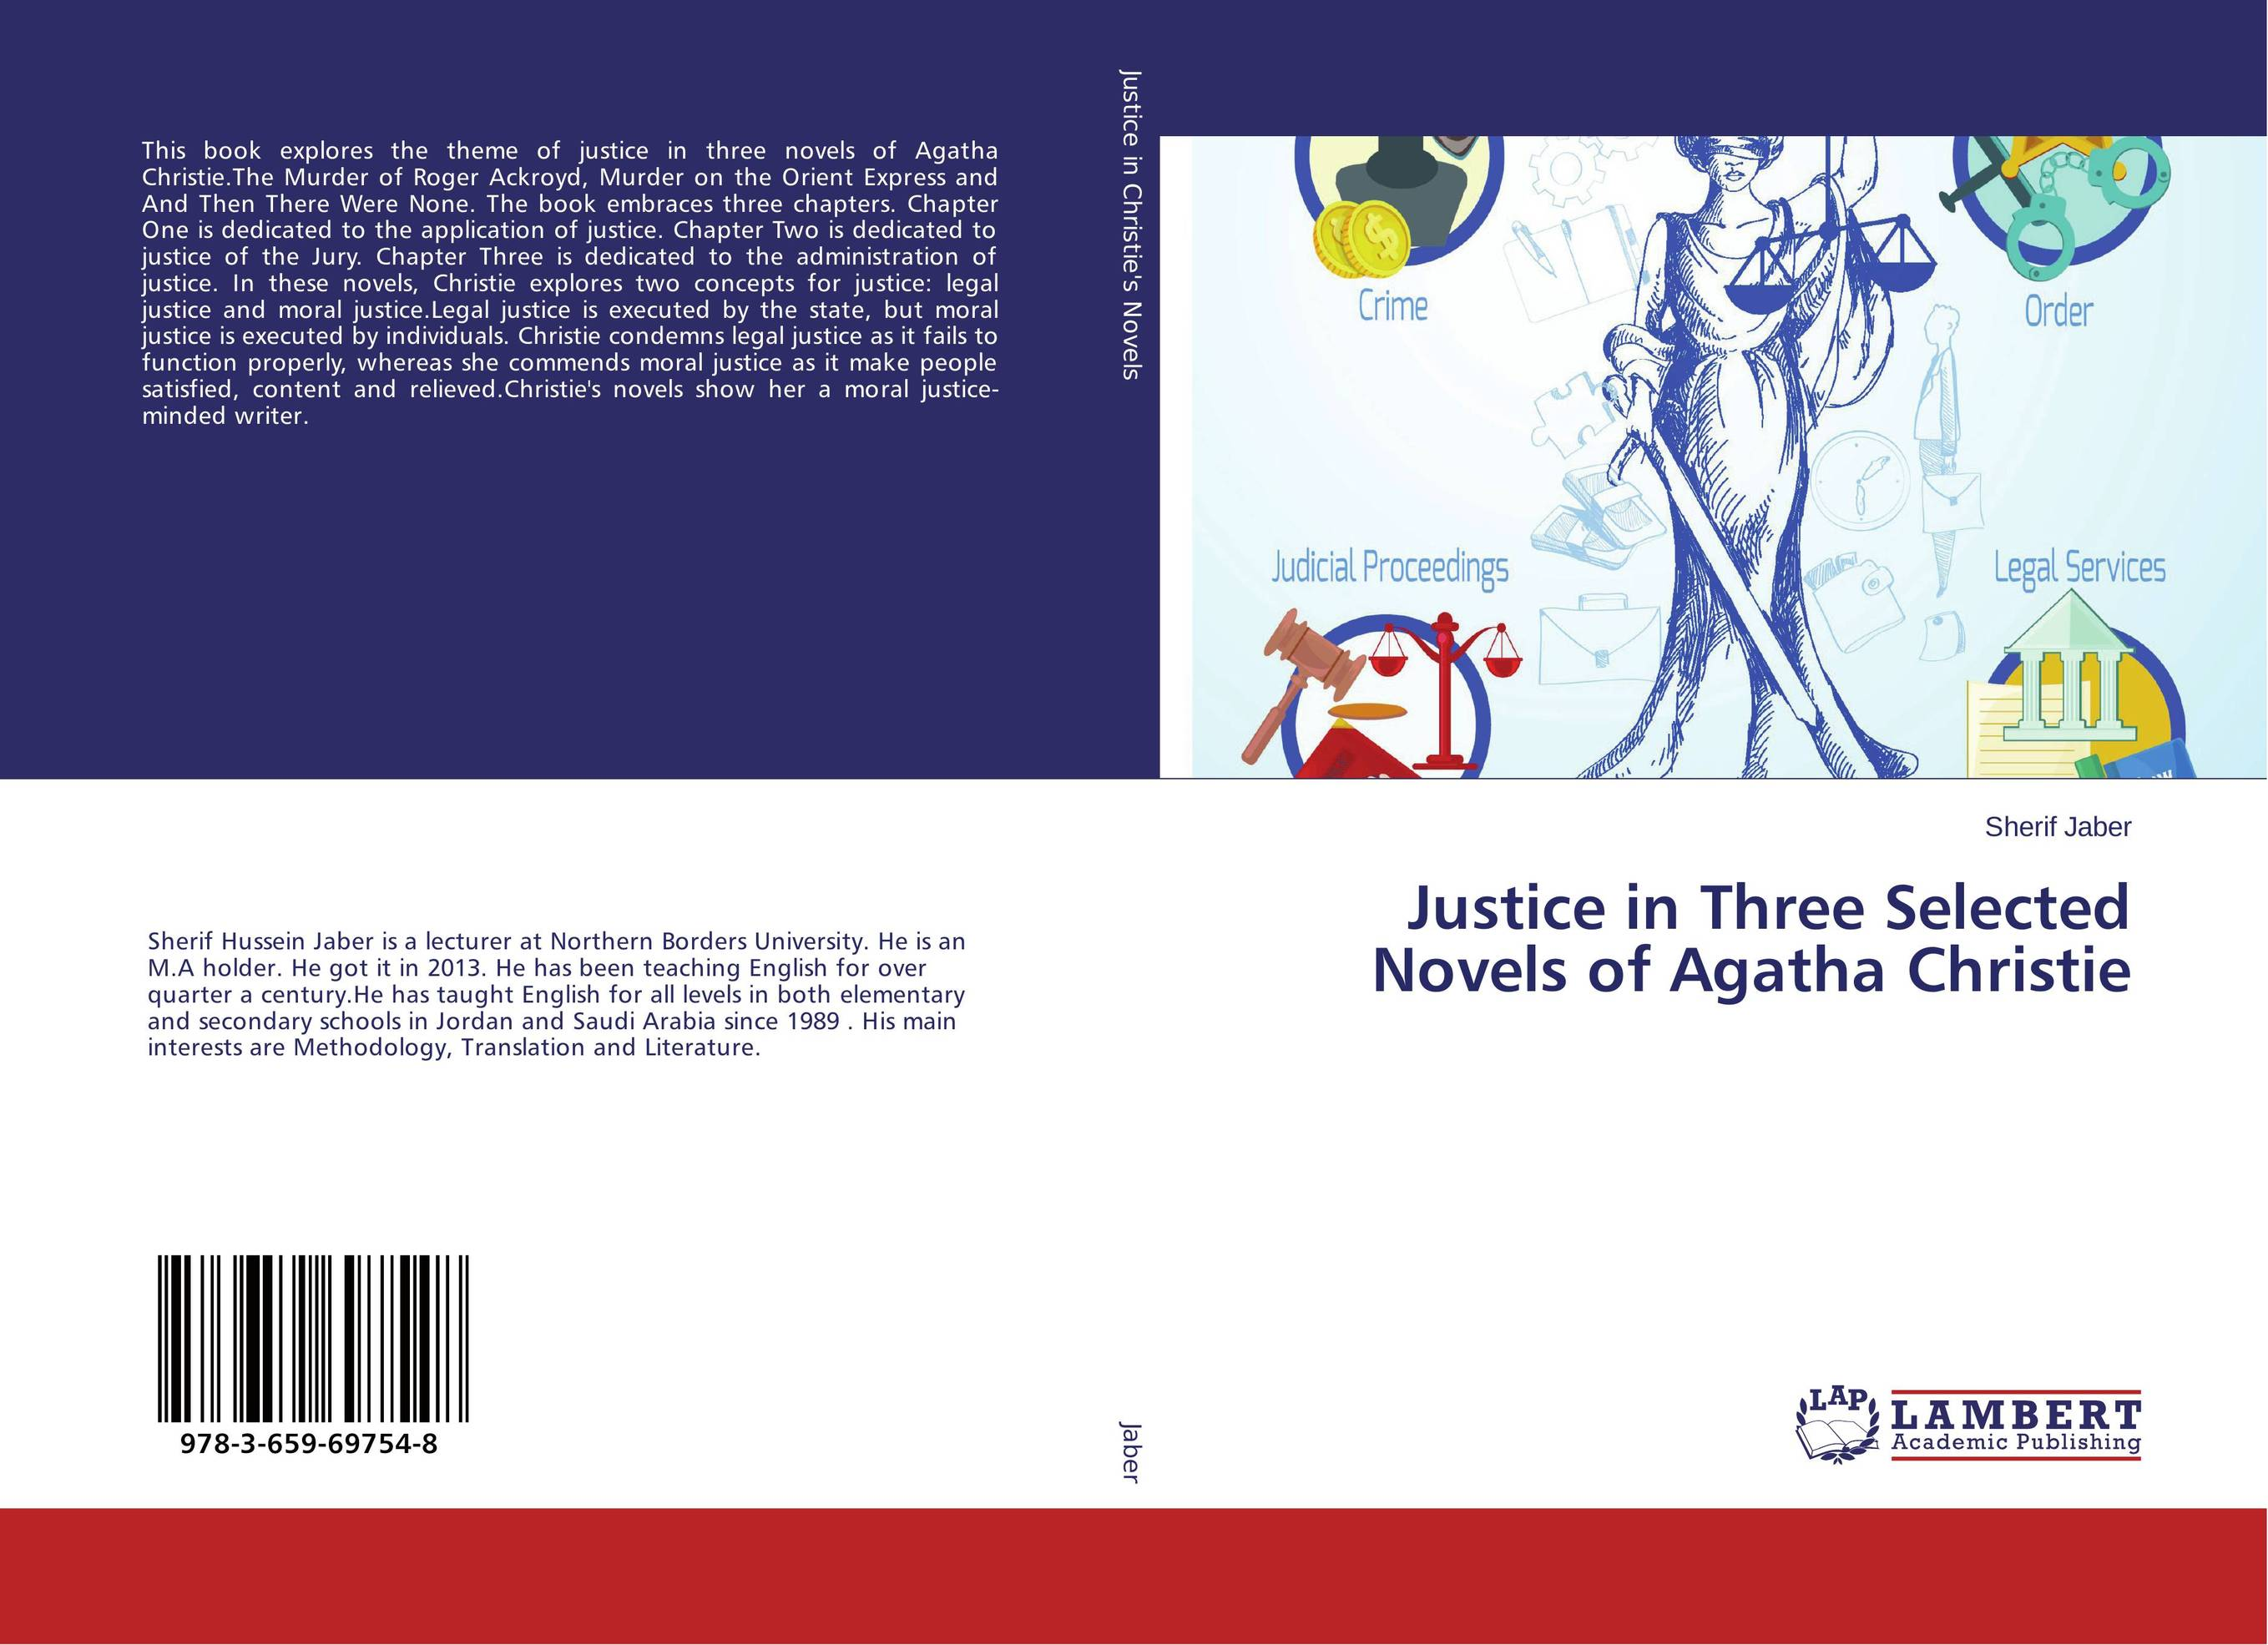 Justice in Three Selected Novels of Agatha Christie administrative justice in context